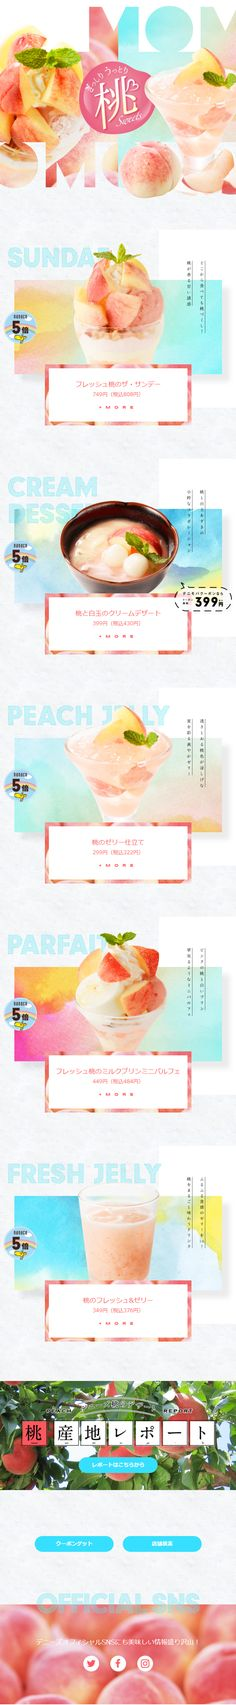 桃のデザート|WEBデザイナーさん必見!スマホランディングページのデザイン参考に(かわいい系) Food Web Design, Menu Design, Site Design, Banner Design, Layout Design, Creative Design, Leaflet Layout, Food Banner, Graph Design